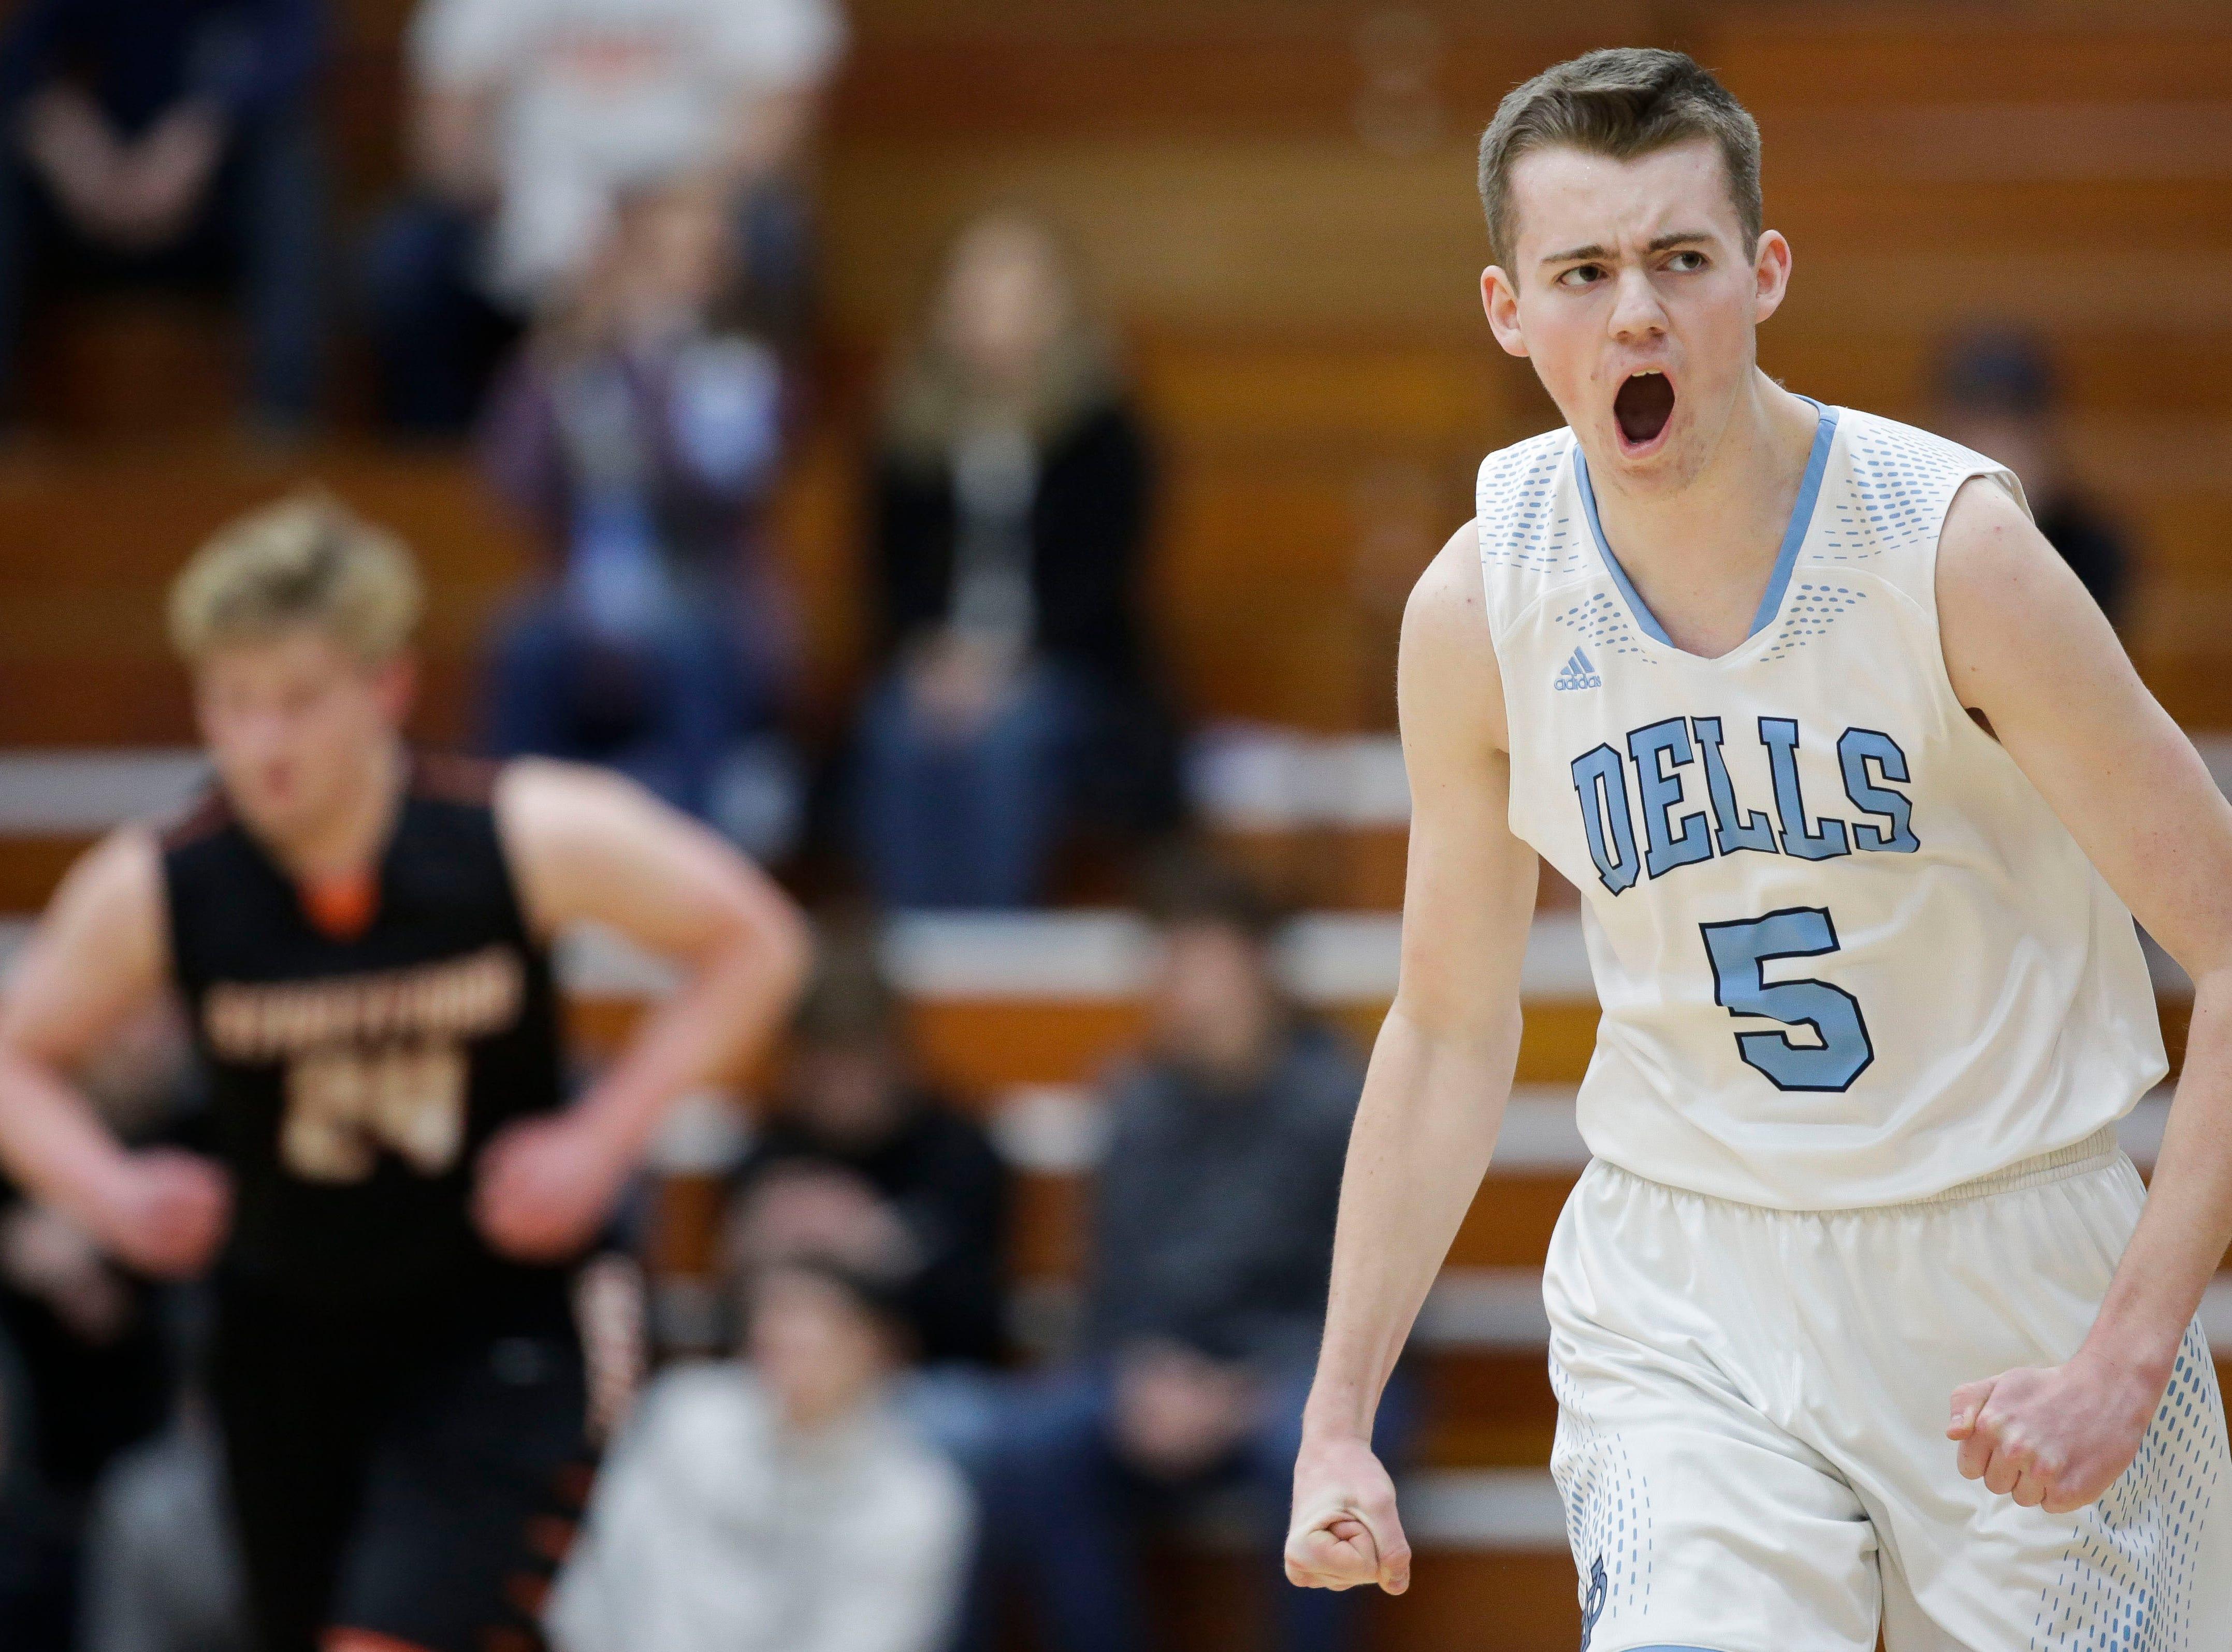 Wisconsin Dells' Sam Millard (5) reacts after hitting a 3-pointer against Stratford in a Division 3 sectional semifinal on Thursday, March 7, 2019, at Stevens Point Area High School in Stevens Point, Wis. Tork Mason/USA TODAY NETWORK-Wisconsin